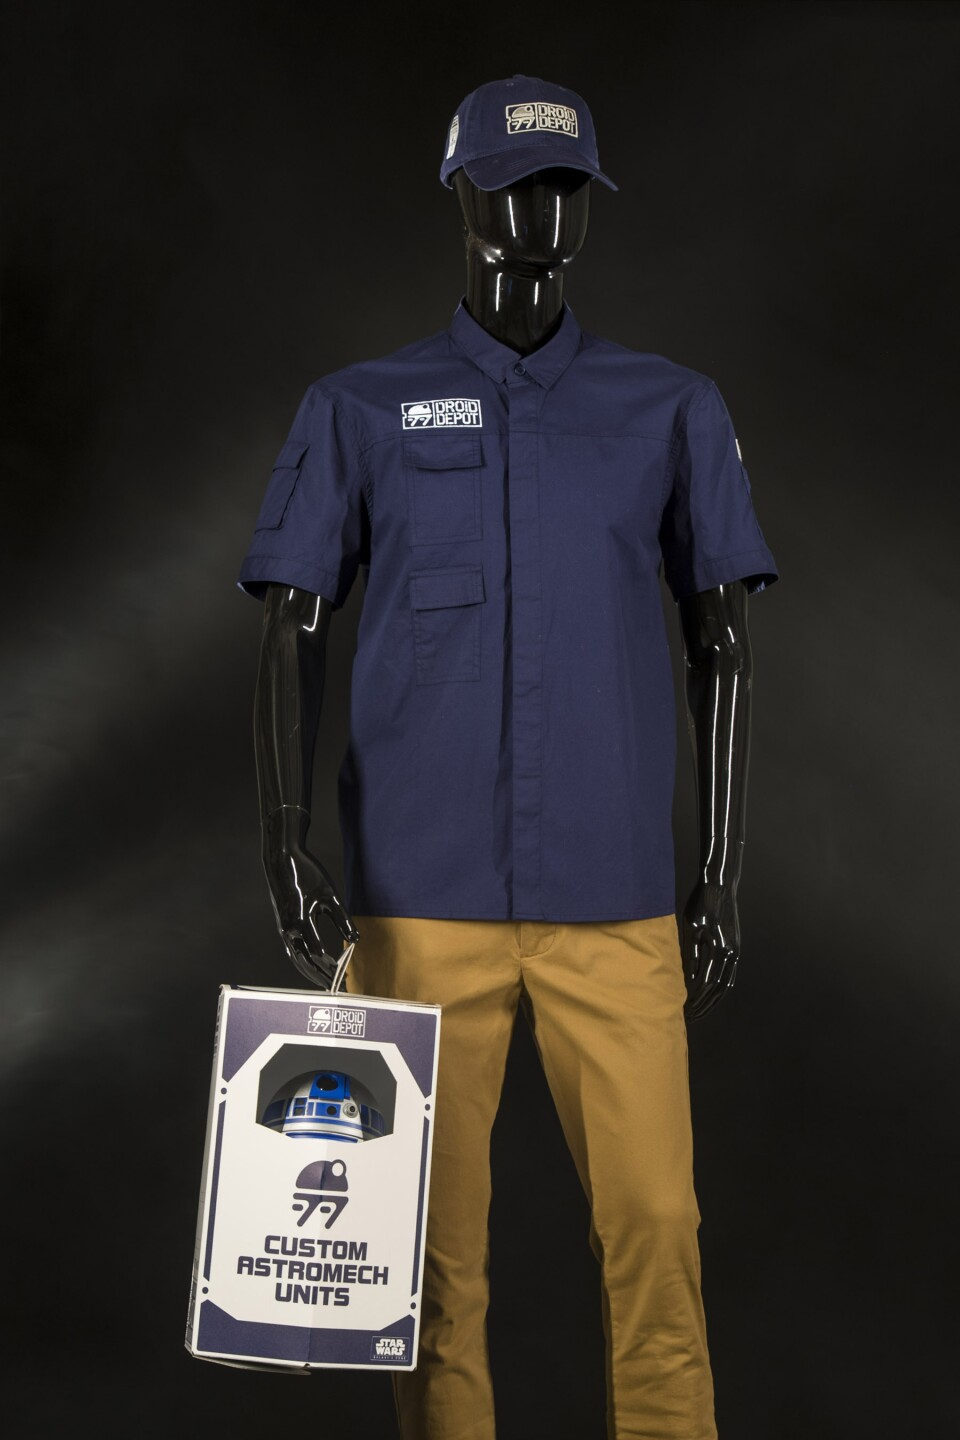 Star Wars: Galaxy's Edge Merchandise - Droid Apparel and Astromech Units